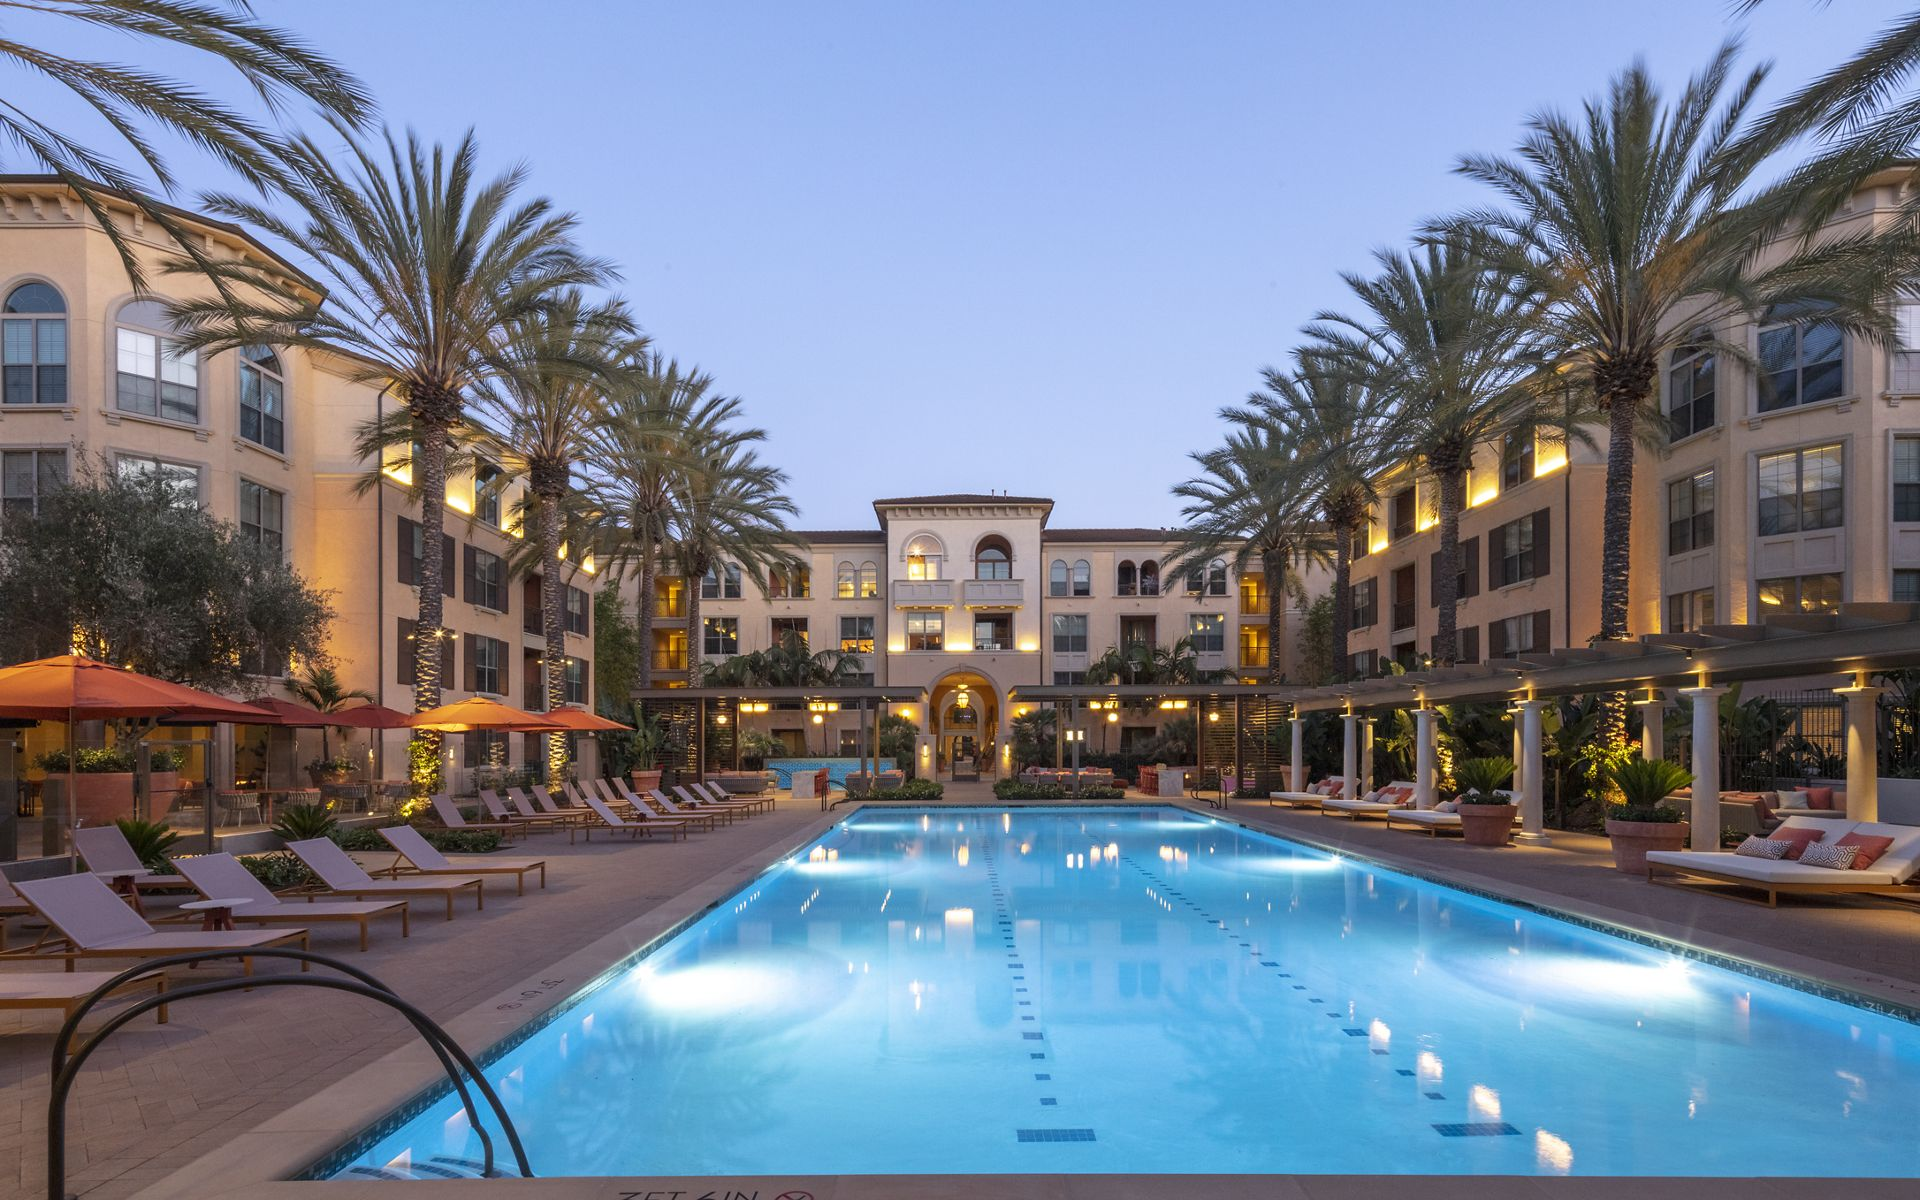 Exterior evening pool view at Delrey at The Village at Irvine Spectrum Apartment Homes in Irvine, CA.